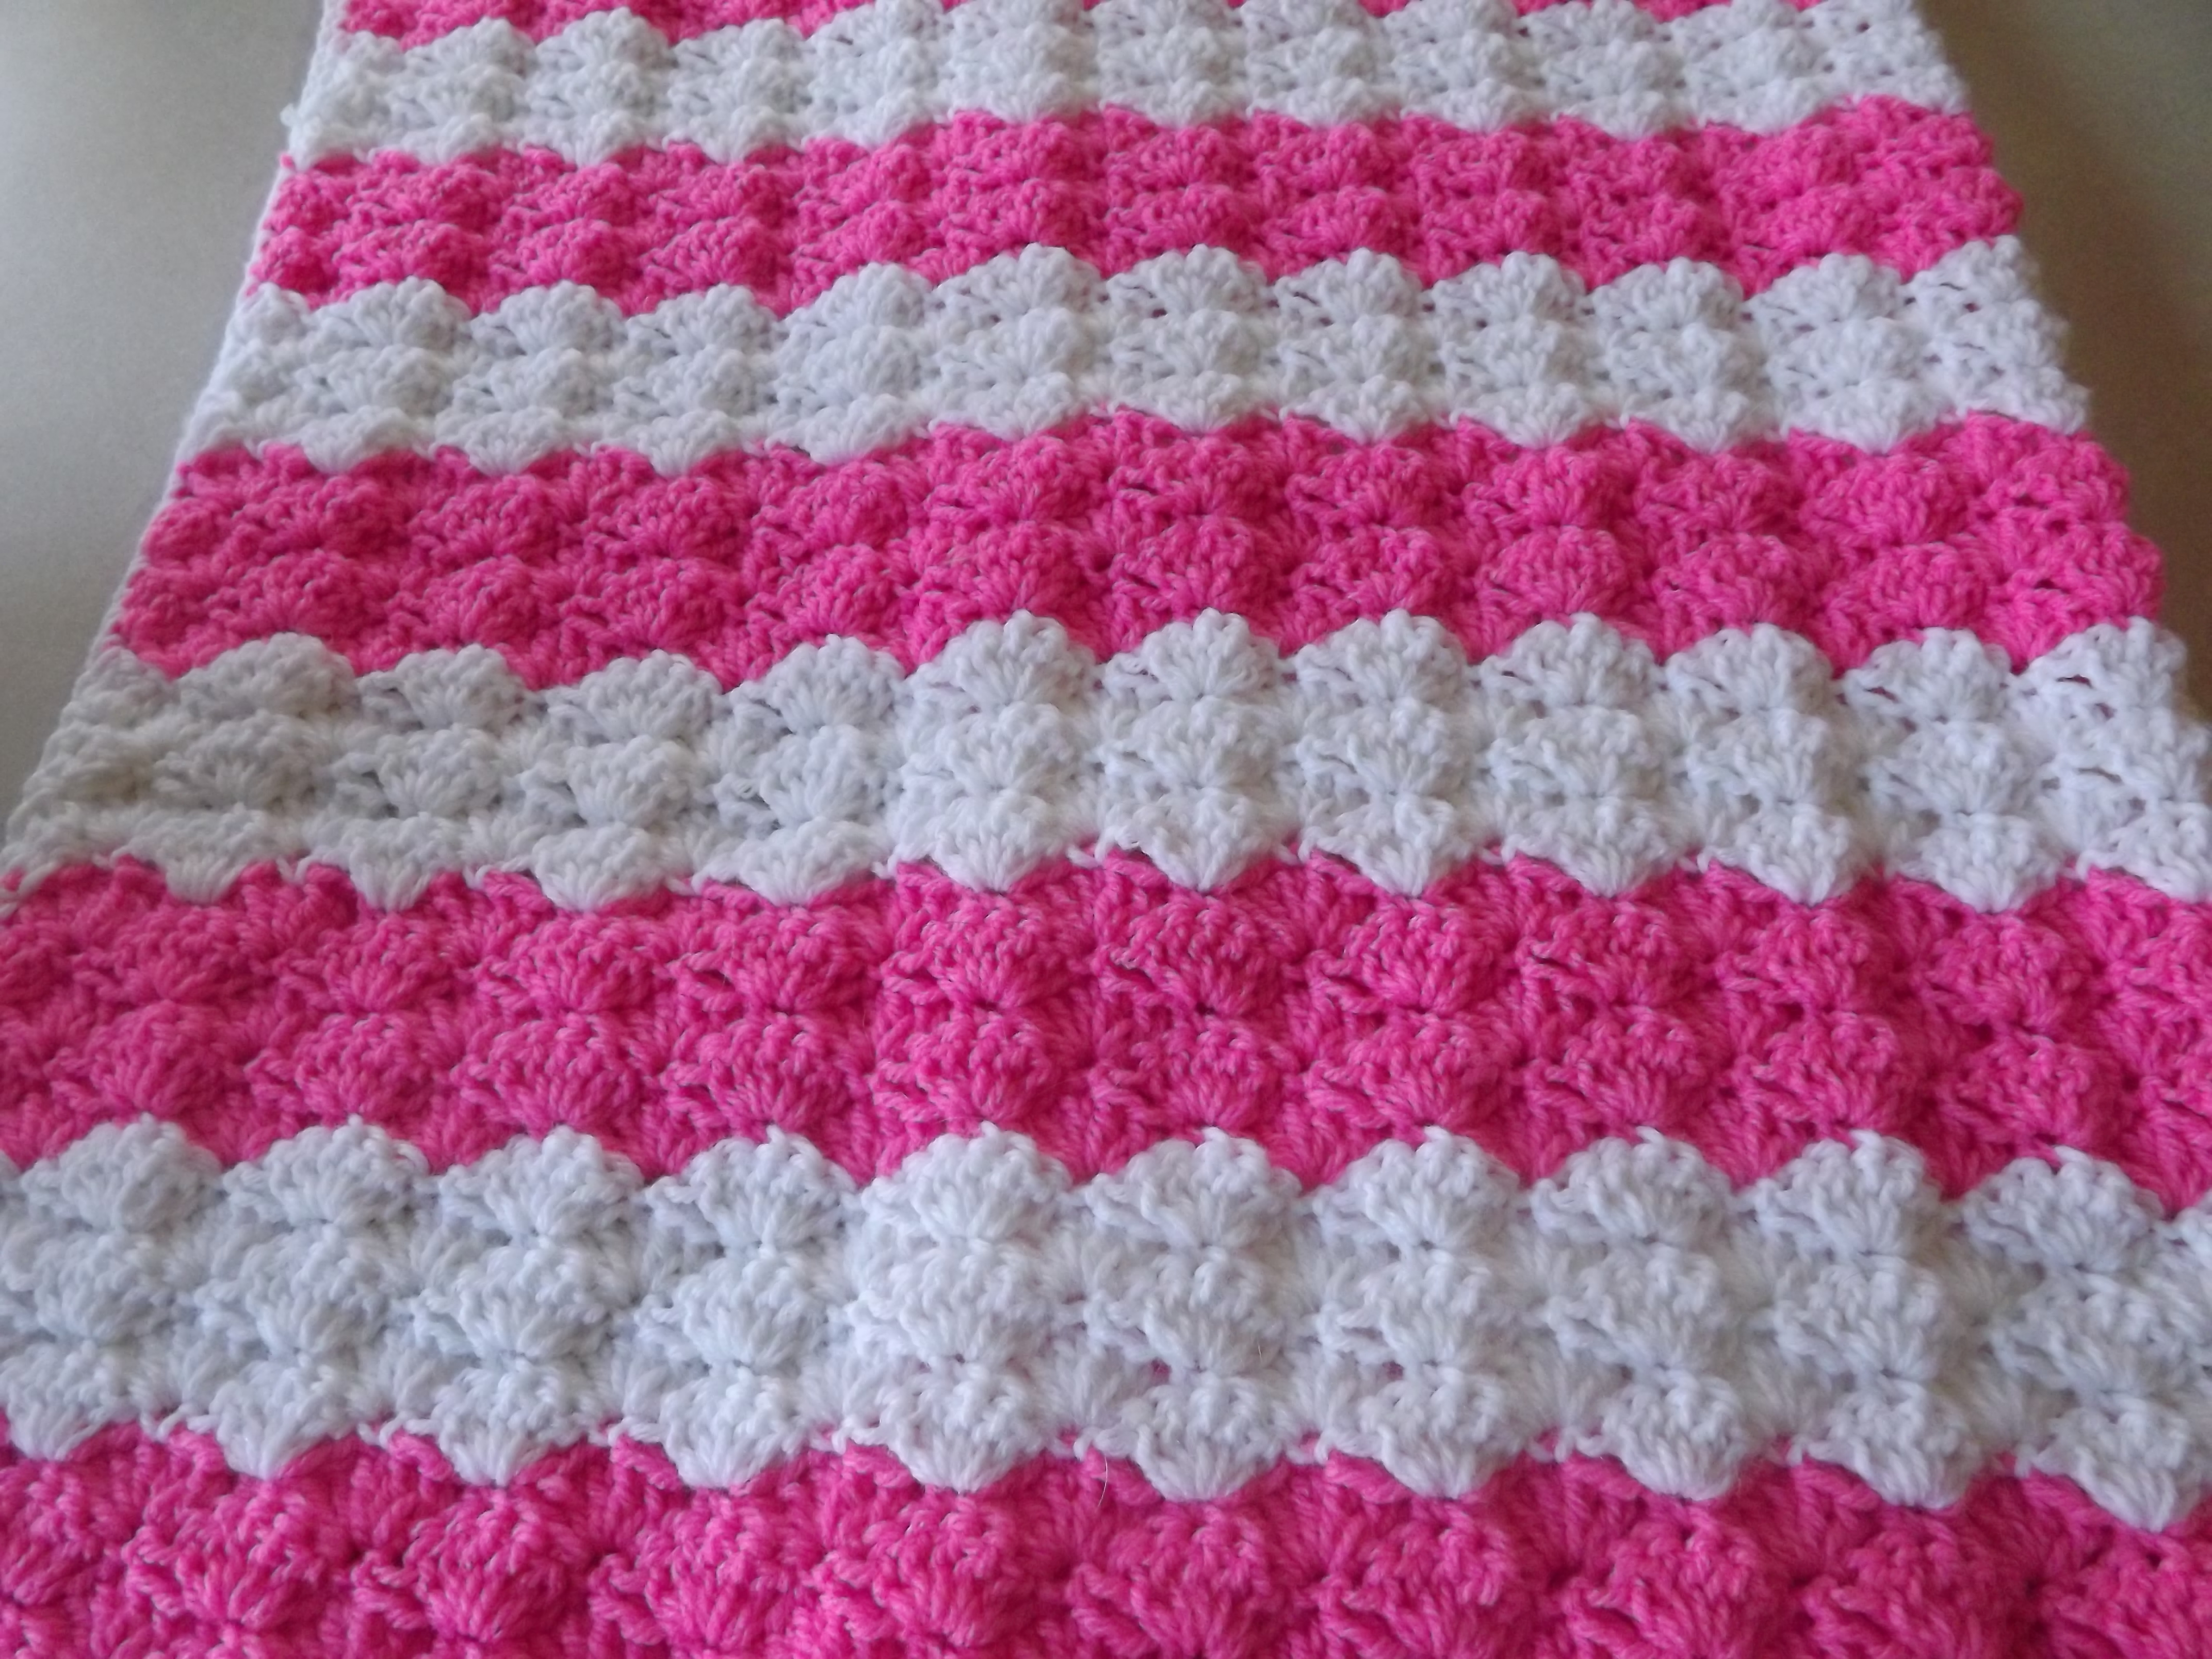 Knitted Afghan Pattern With Heart